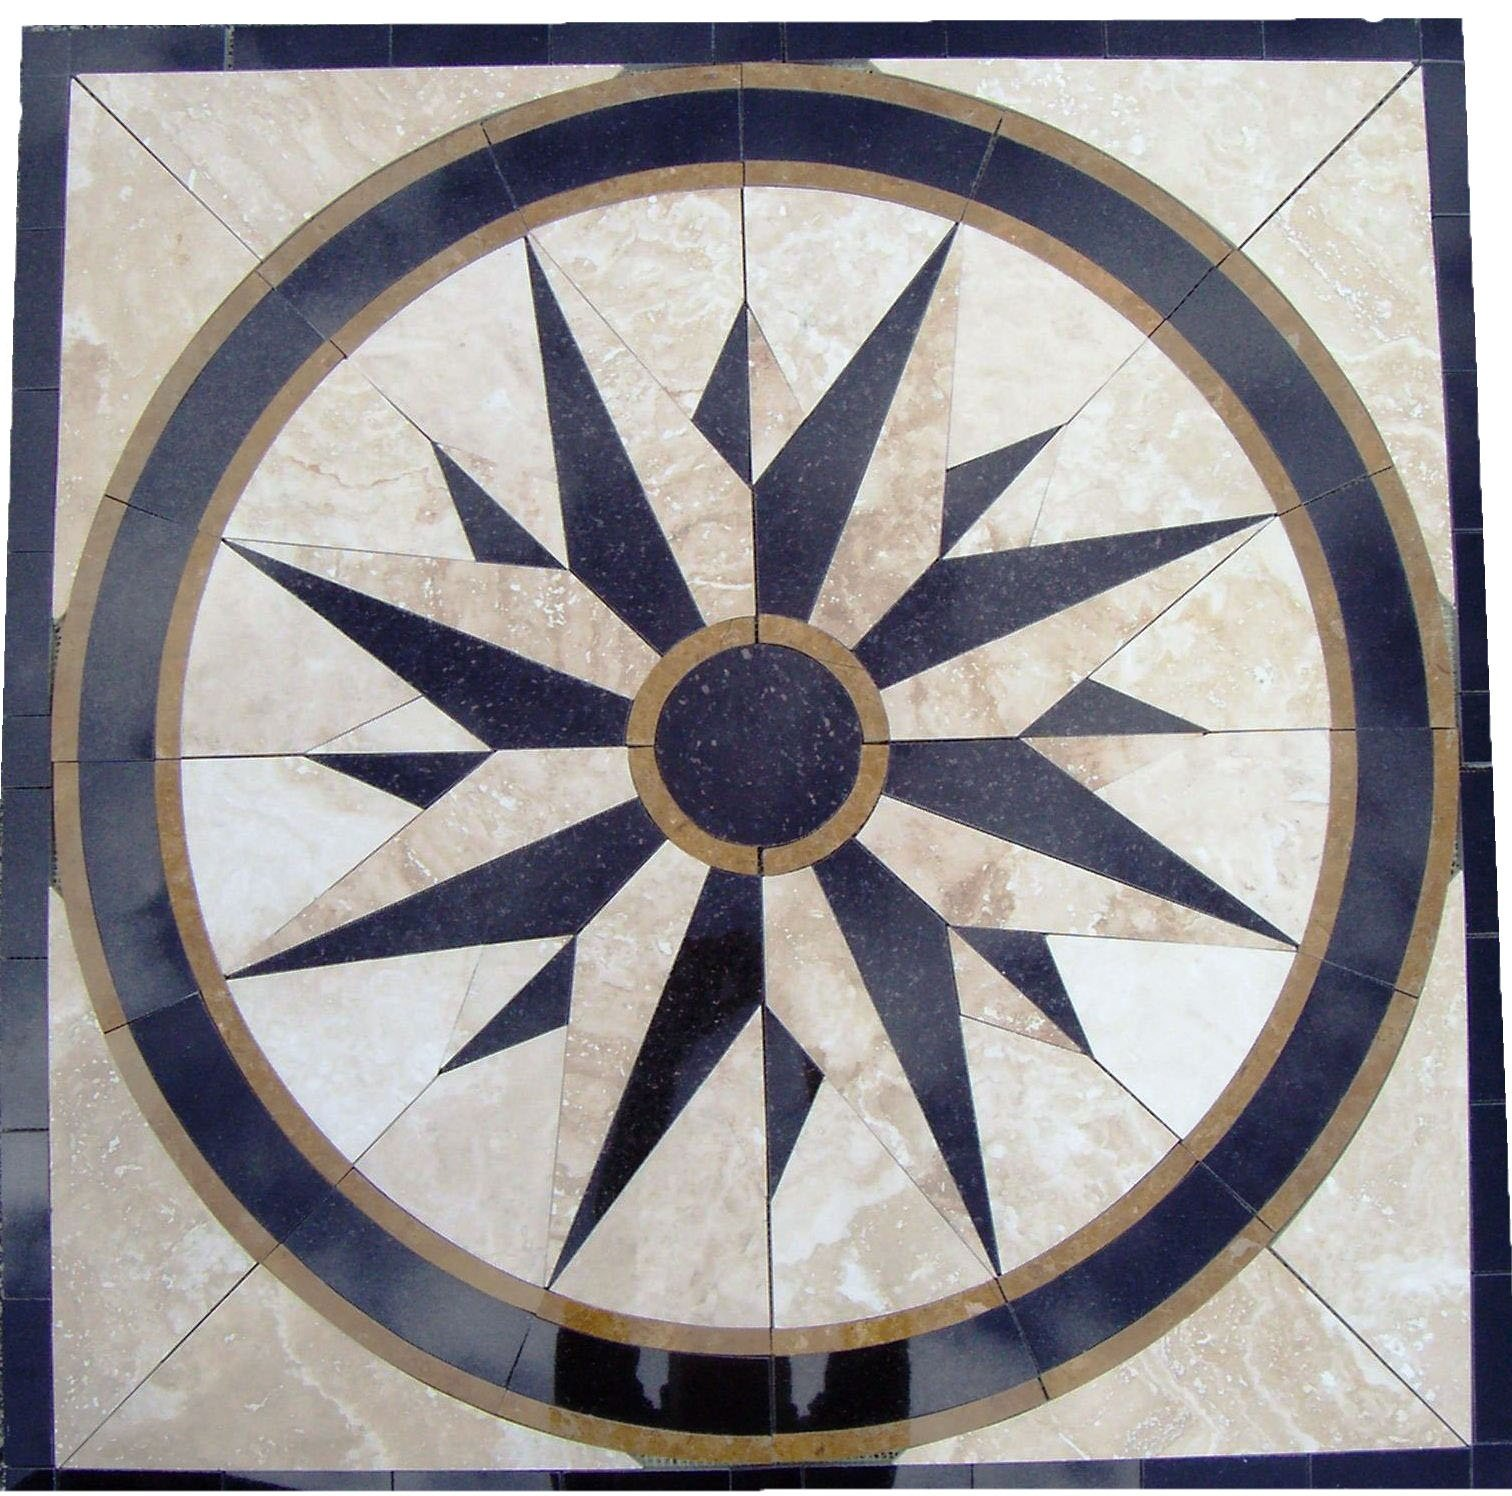 Tile Floor Medallion Marble Mosaic North Star Design 34'' by MedallionUS